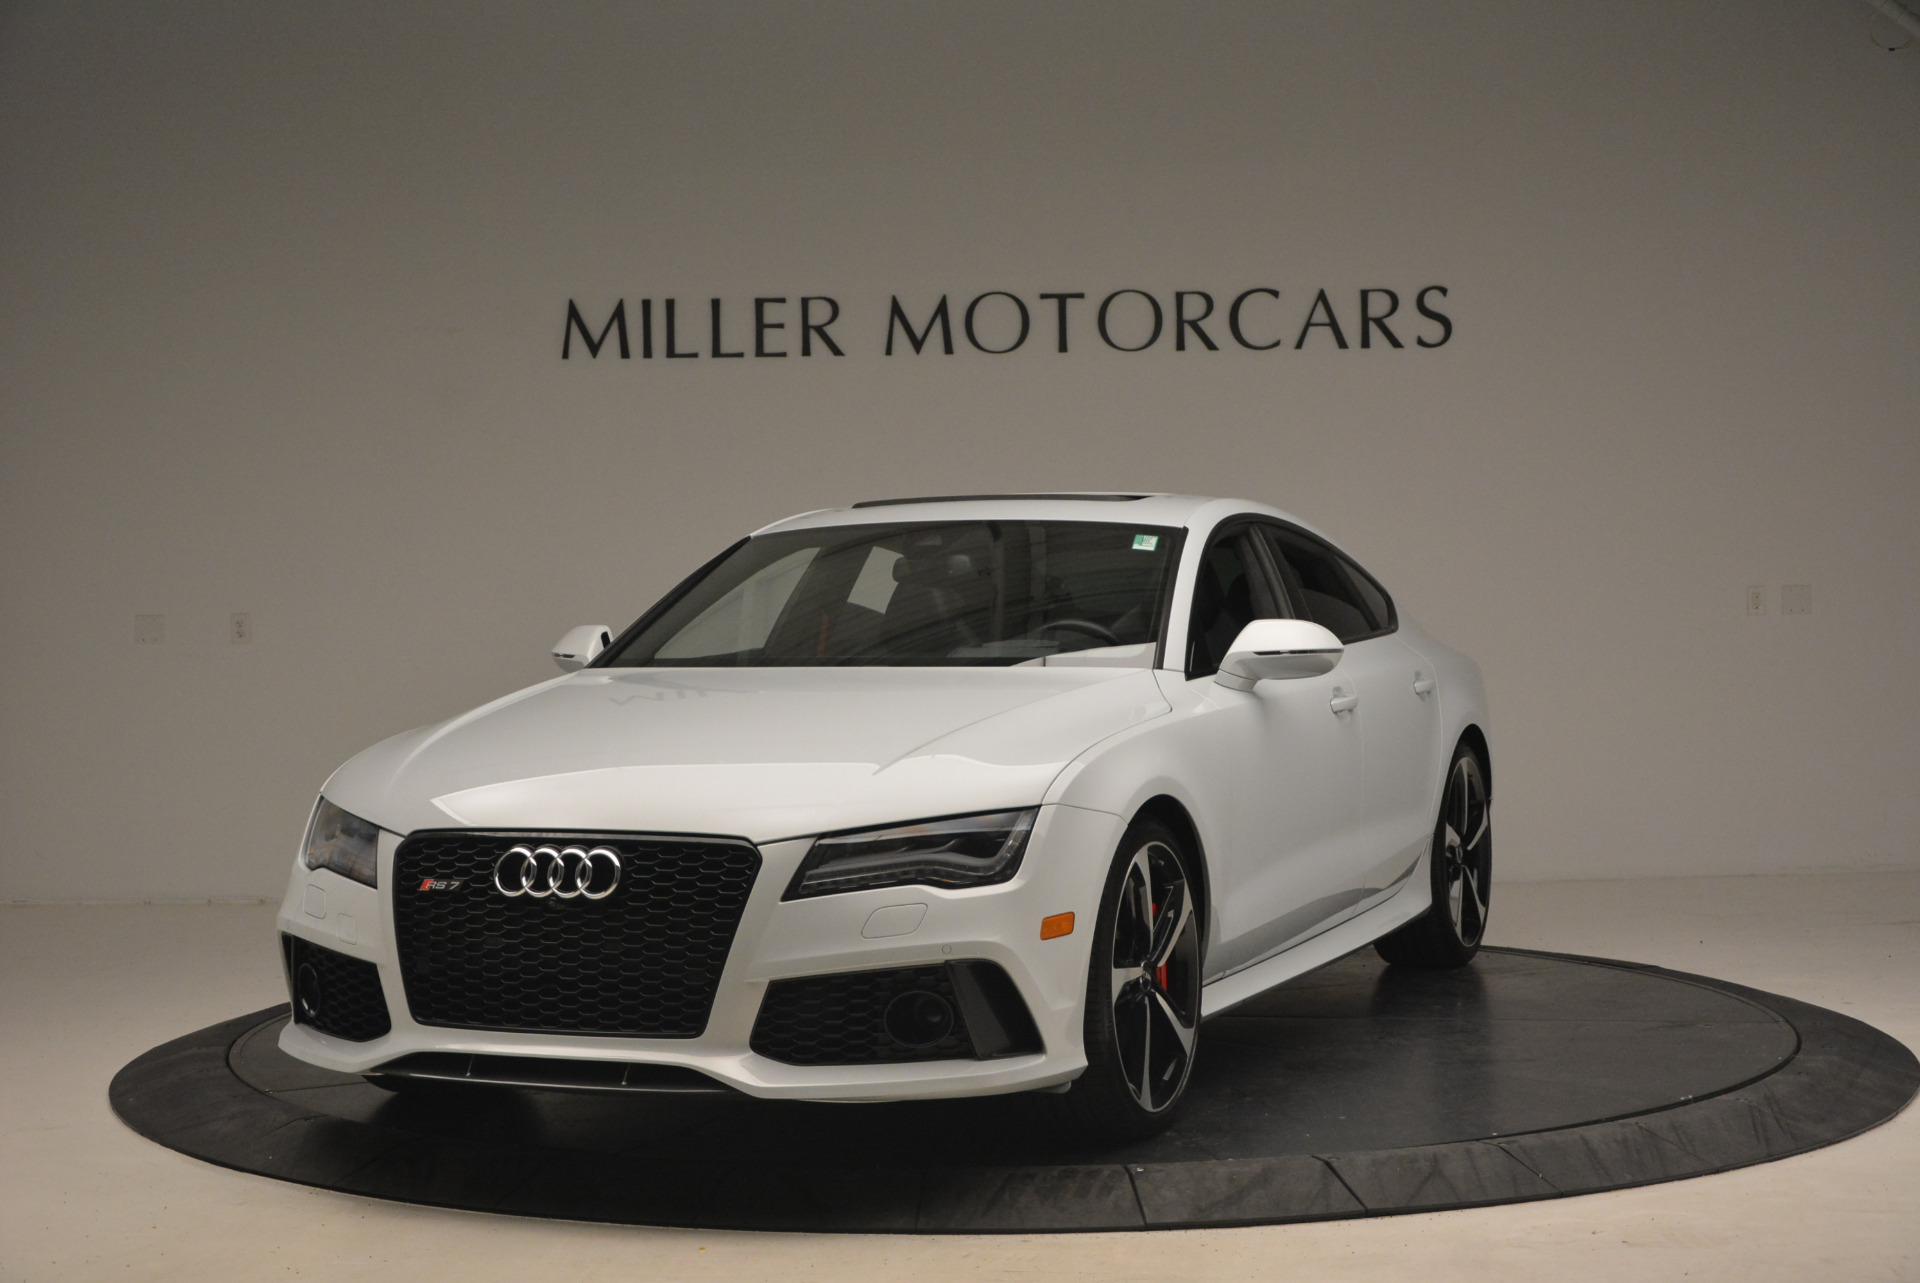 Used 2014 Audi RS 7 4.0T quattro Prestige for sale Sold at Alfa Romeo of Greenwich in Greenwich CT 06830 1